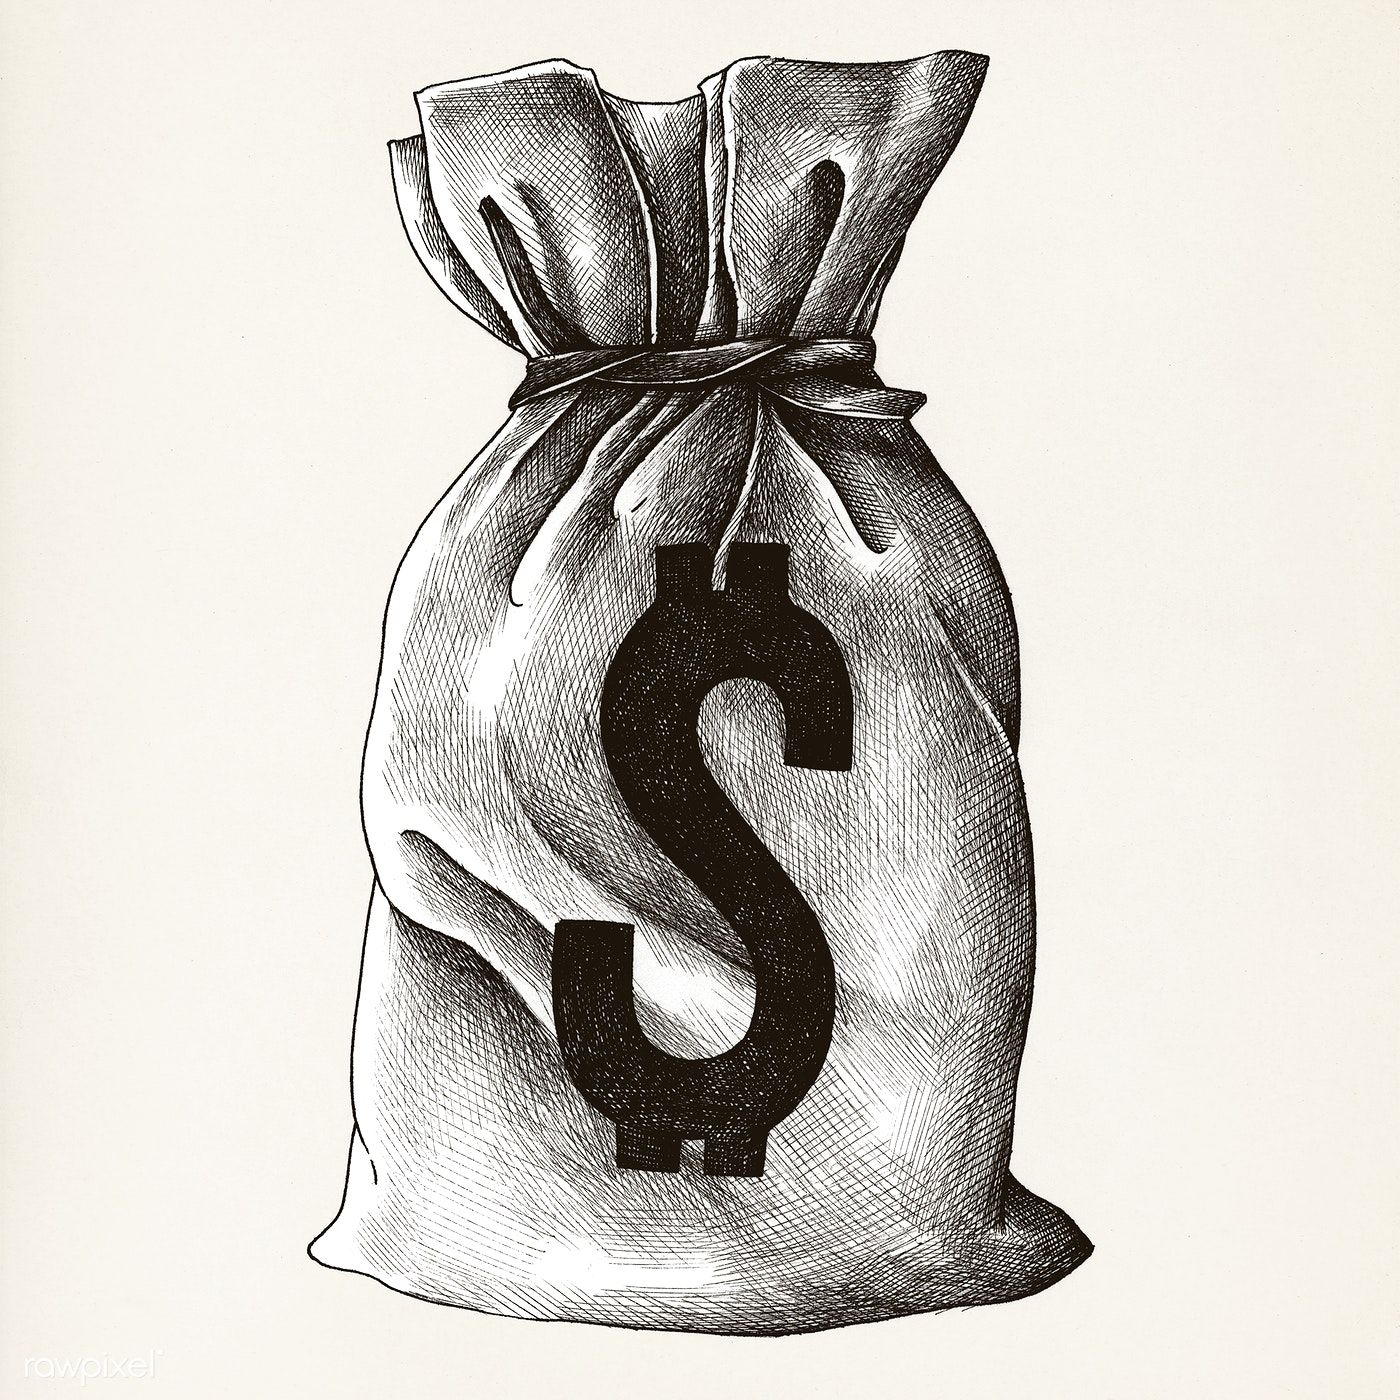 Download Premium Illustration Of Hand Drawn Money Sack Isolated On Money Sack How To Draw Hands Art Poster Design